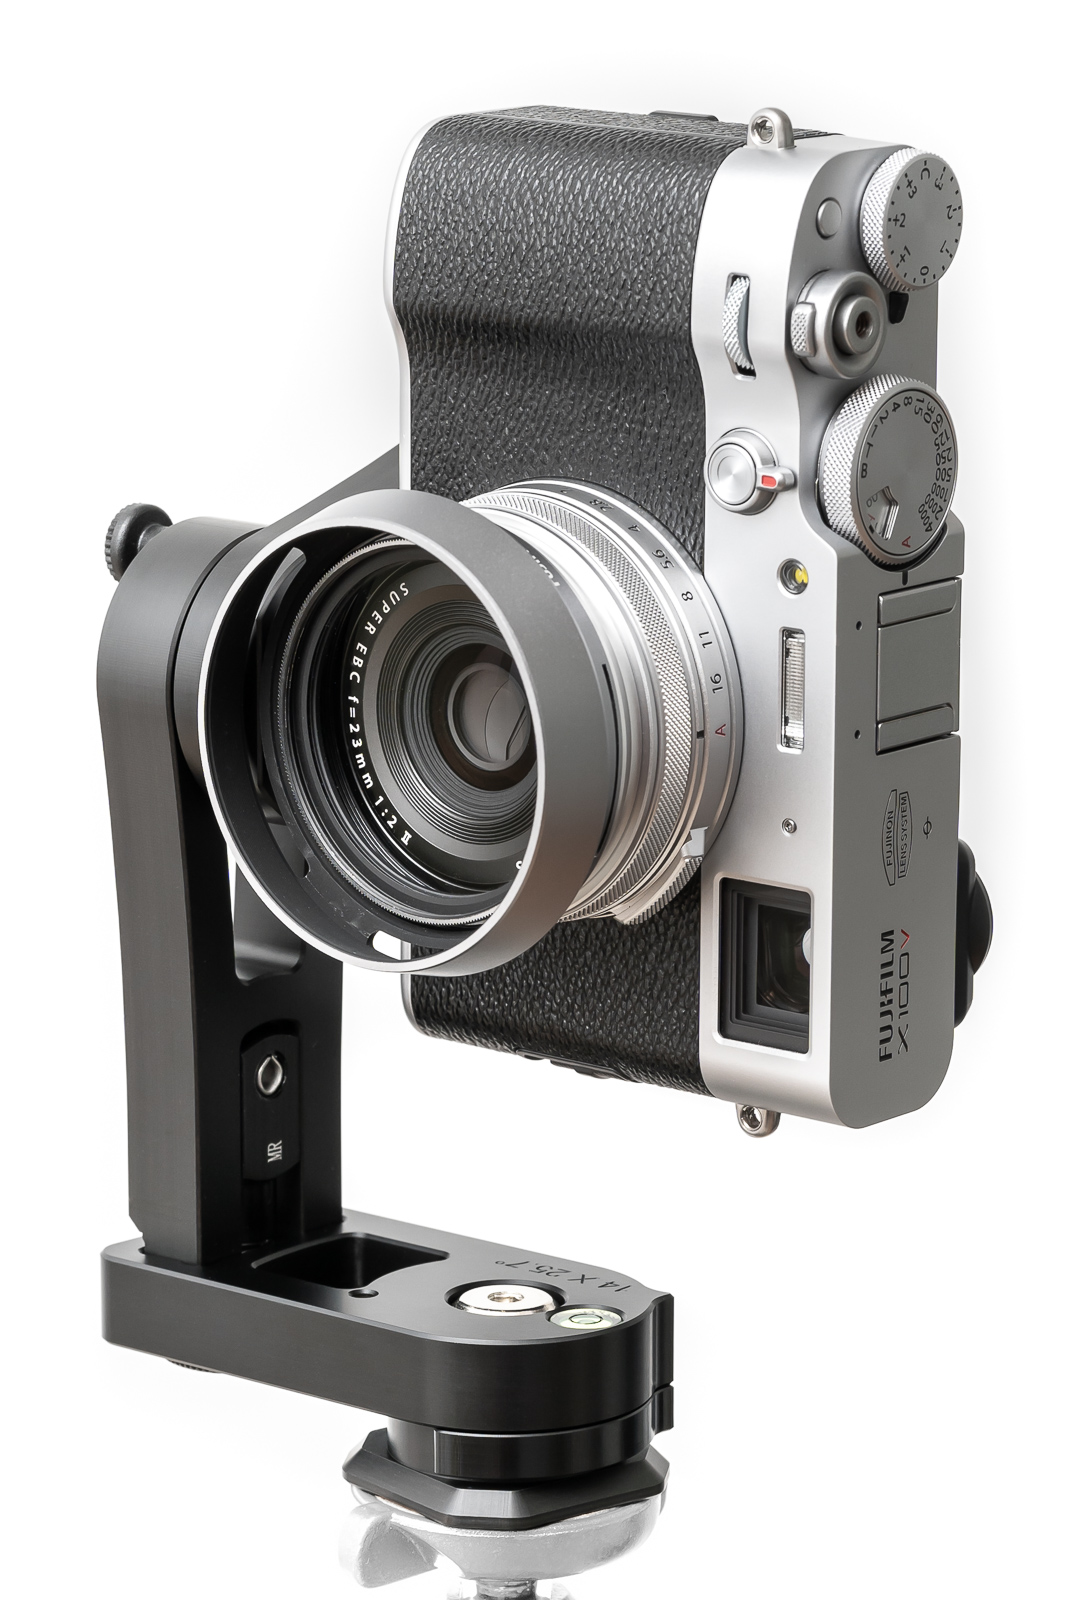 with adapter ring AR-X100 and hood LH-X100